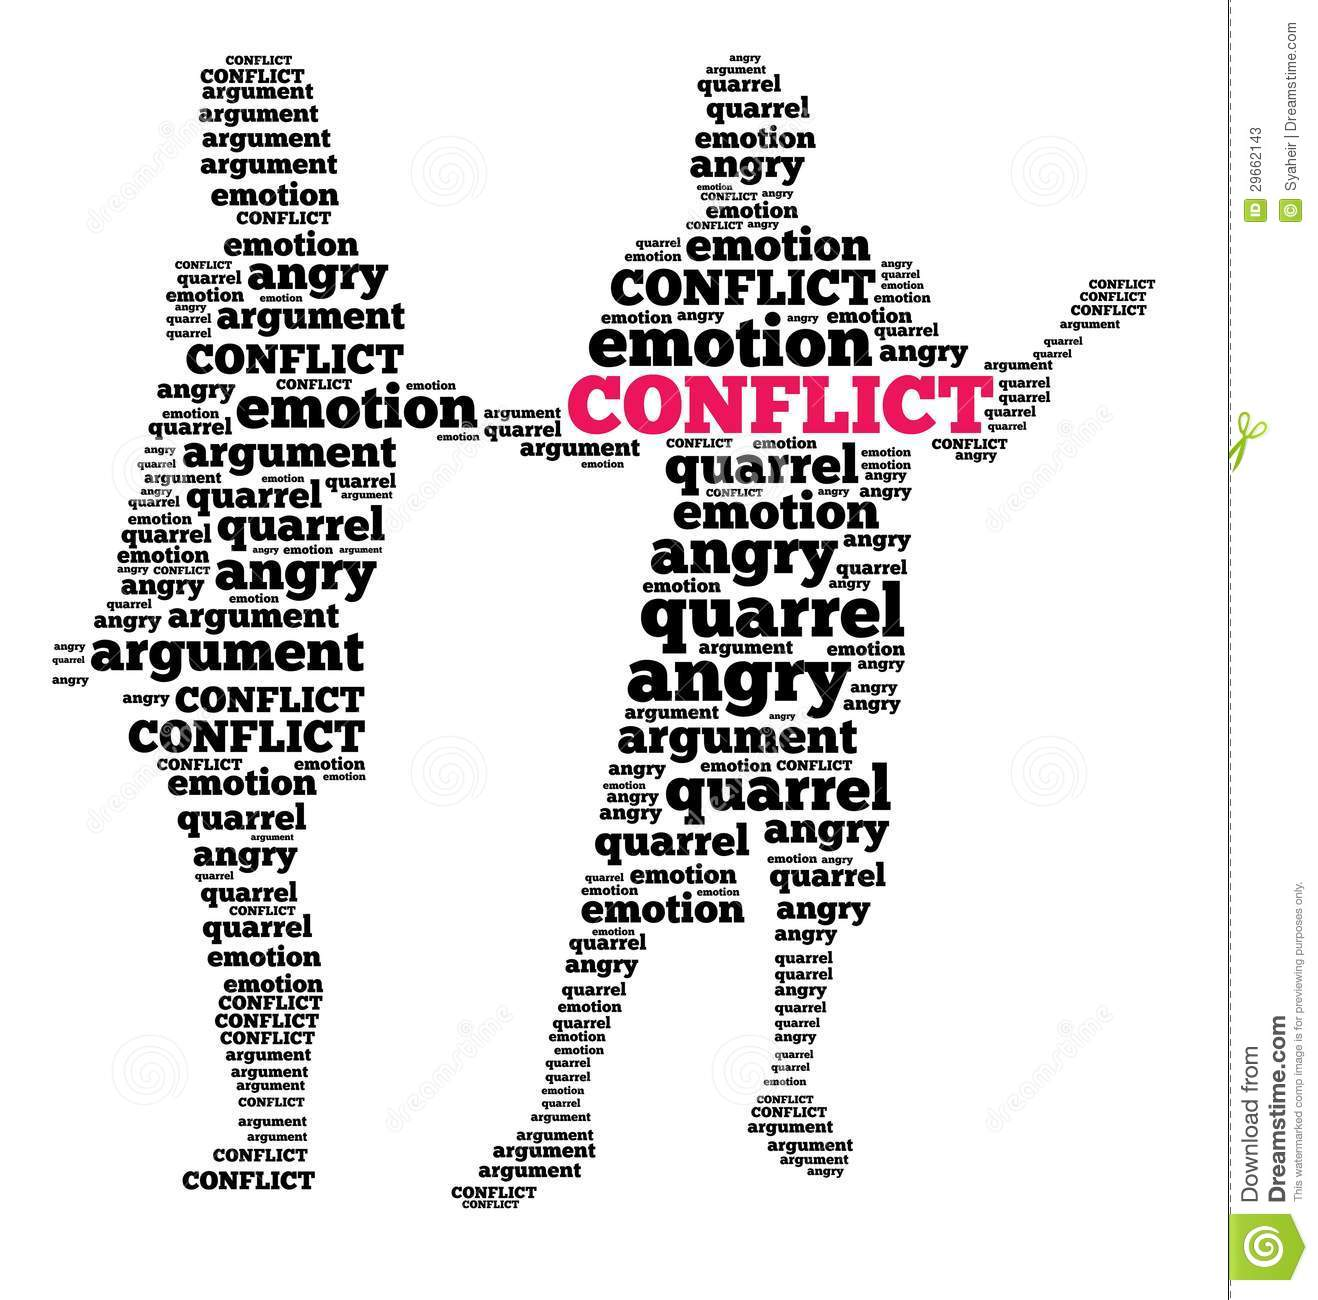 Conflict in word cloud stock illustration. Illustration of